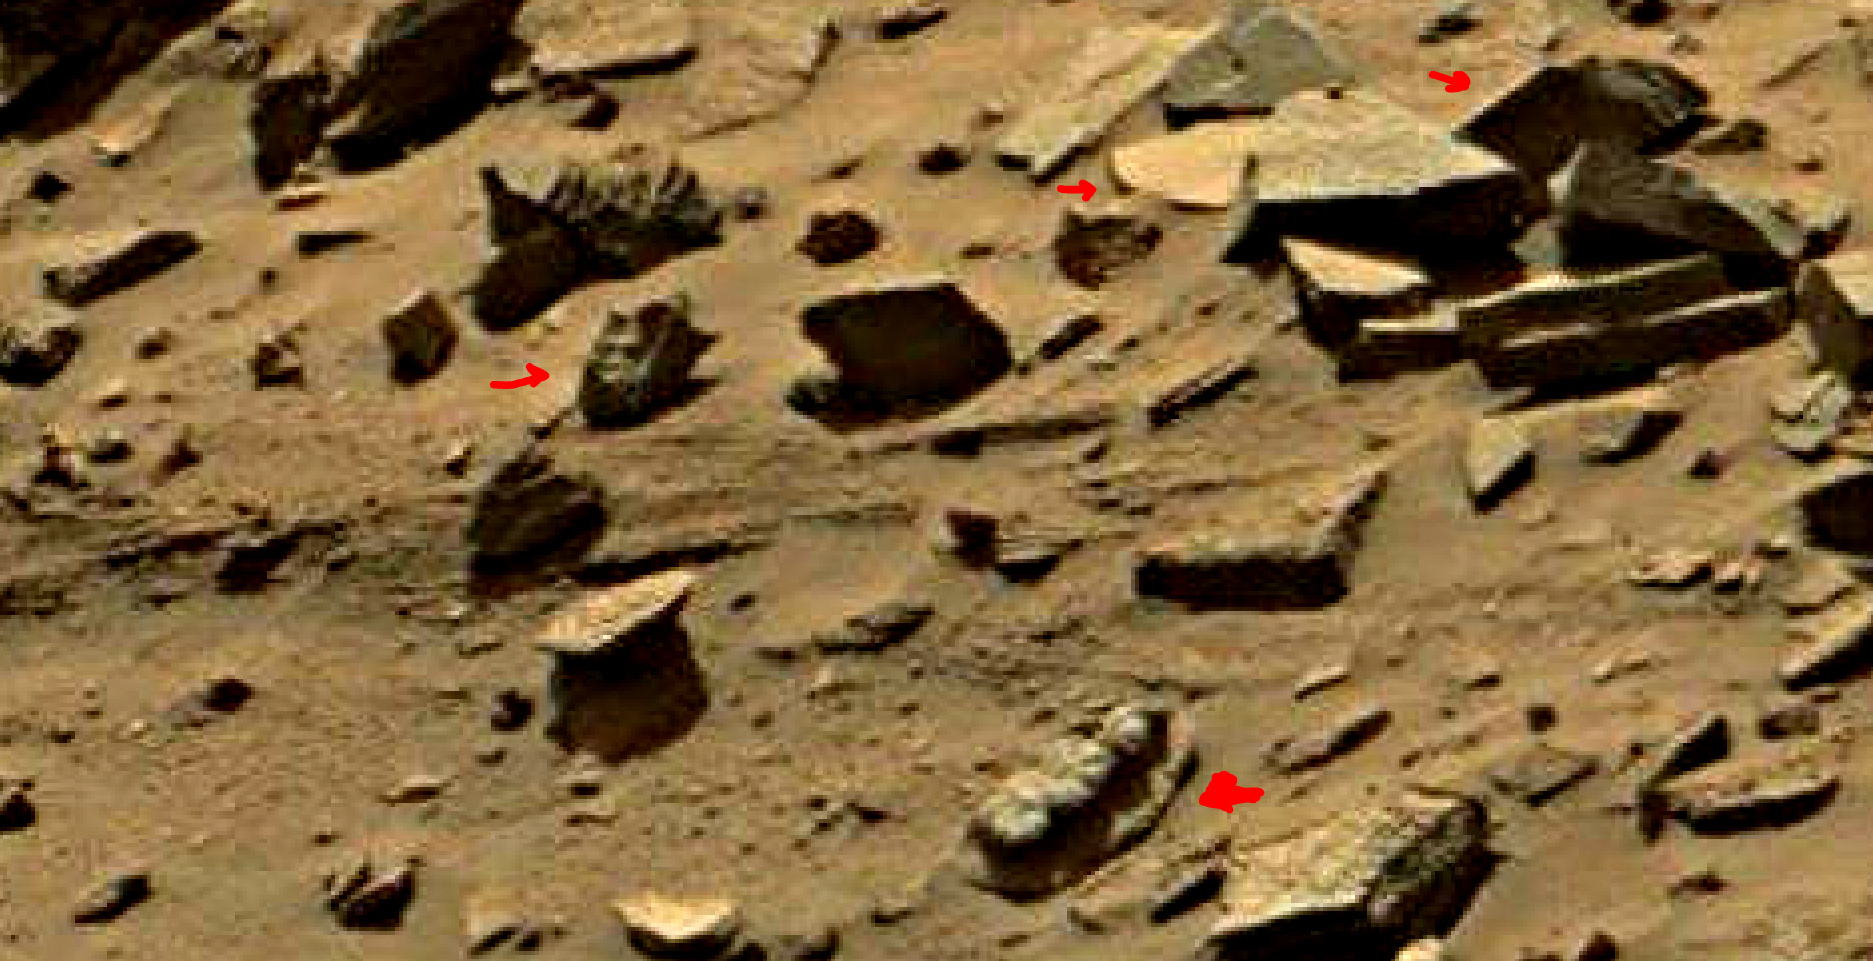 mars sol 1434 anomaly artifacts 10 was life on mars